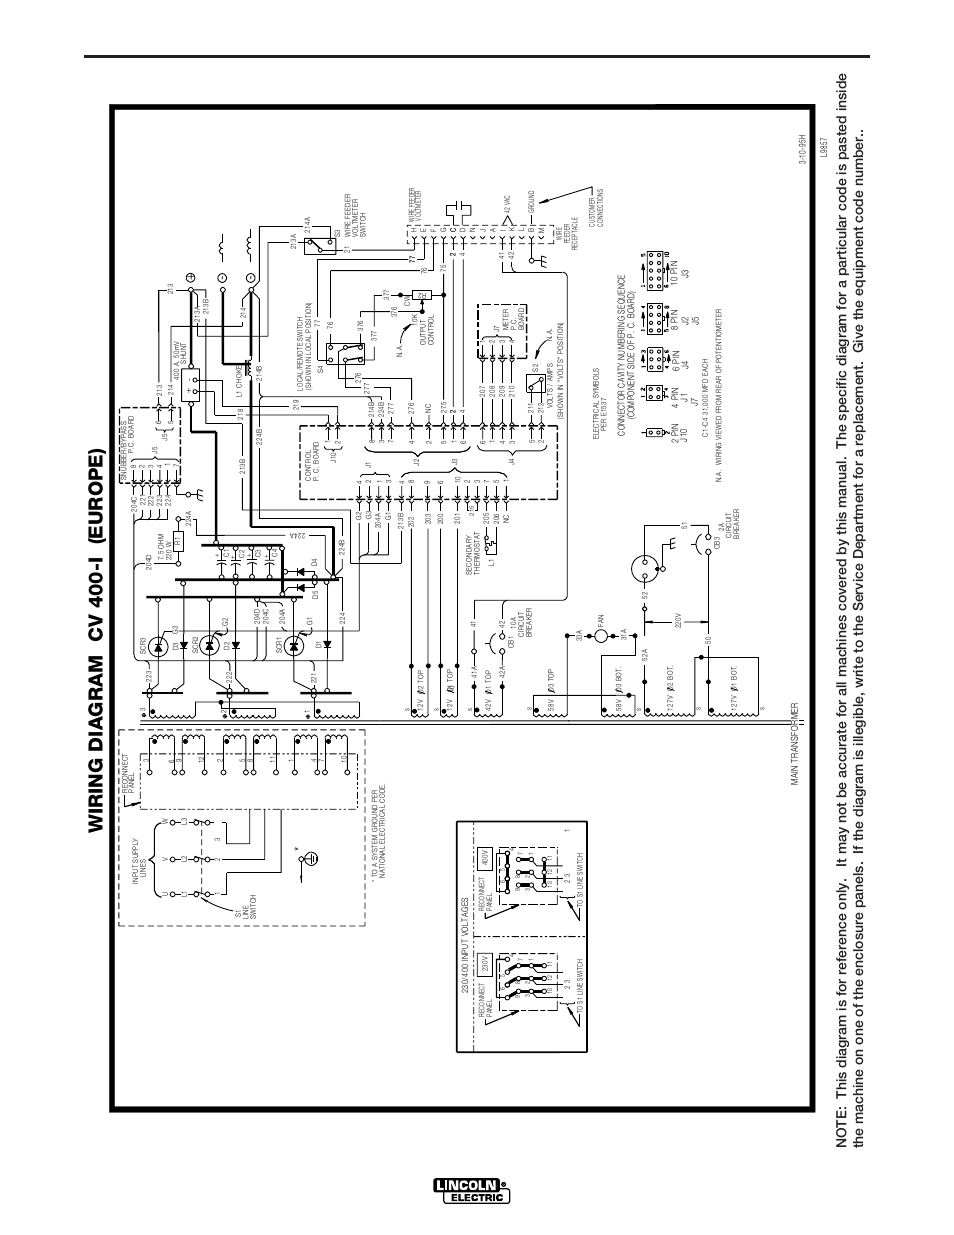 lincoln cv400 wiring diagram